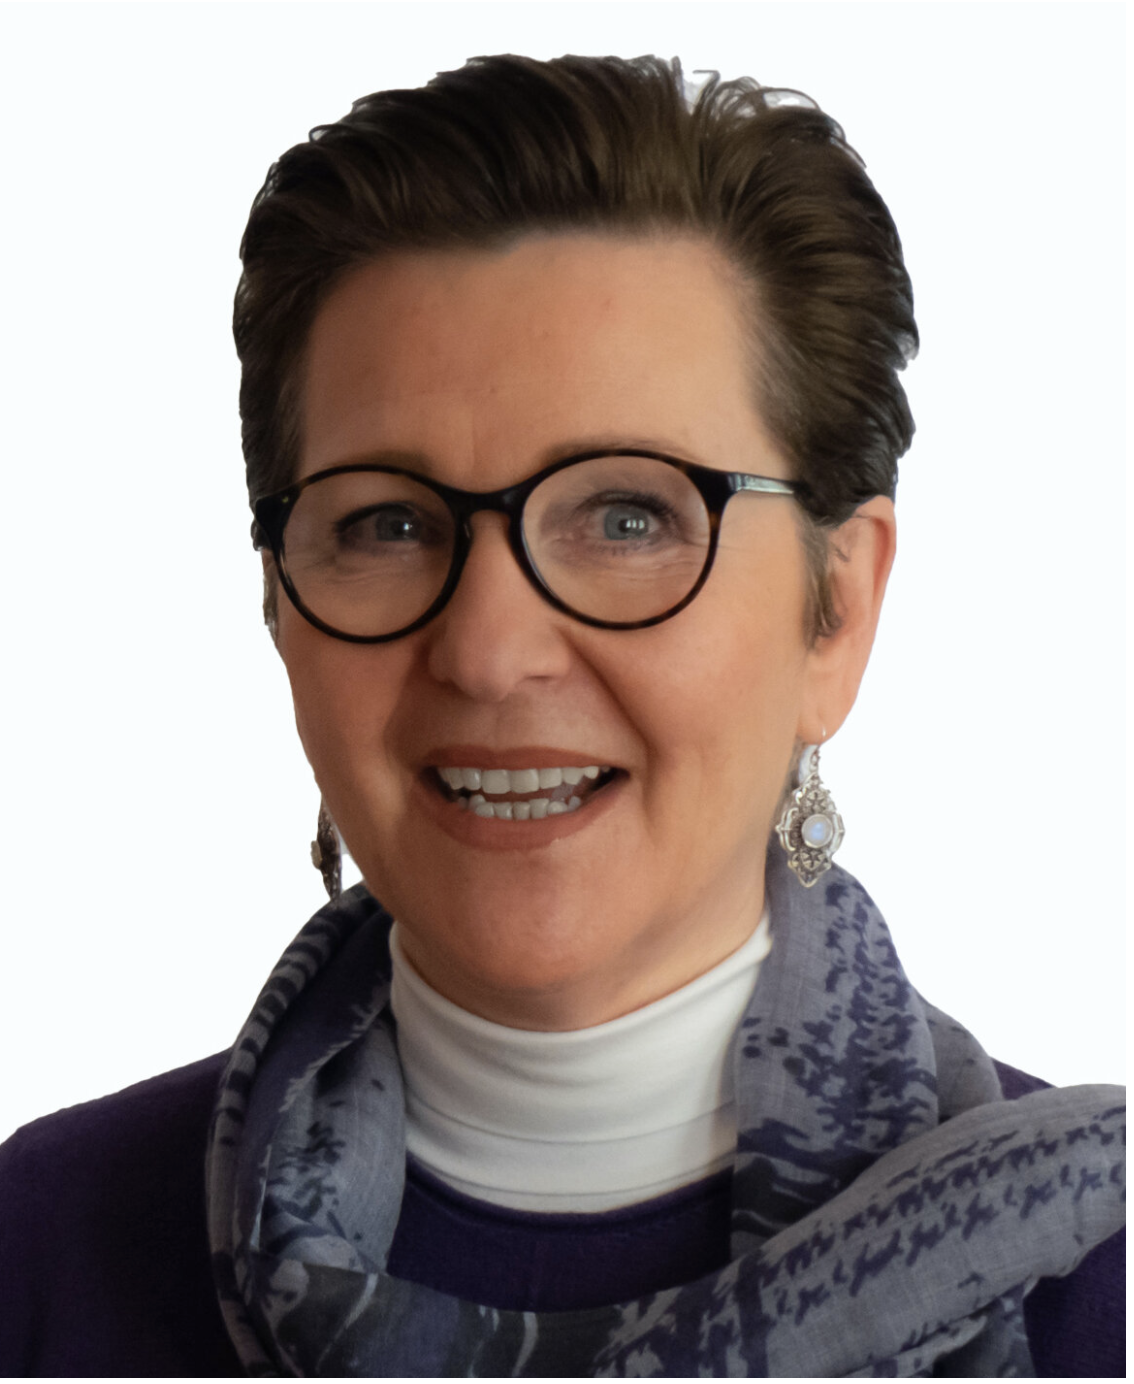 Self-Organization Pioneer and Purpose Agent Christiane Seuhs-Schoeller Seeks to Redefine Love and Power in Service of the Greater Good.